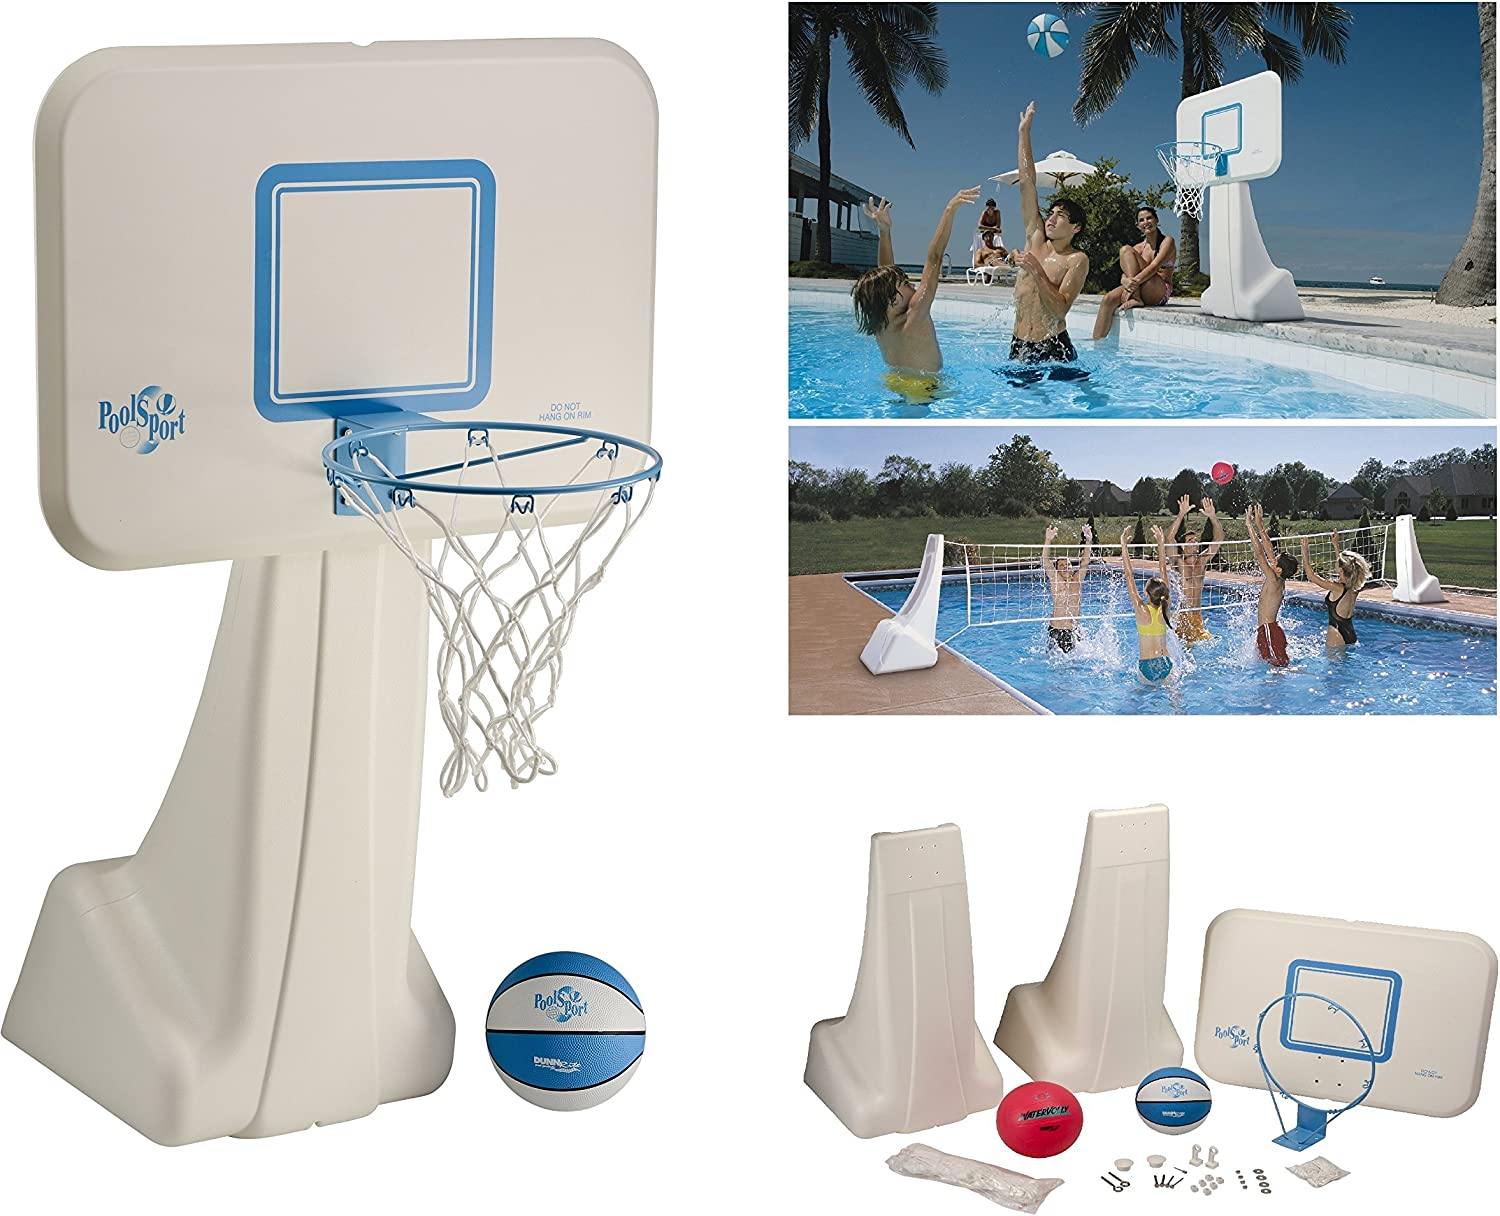 B000PIQTL6 Dunnrite Products Pool Sport 2-in-1 Swimming Basketball Hoop and Volleyball Combo Set 91mXQmHCU7L.SL1500_